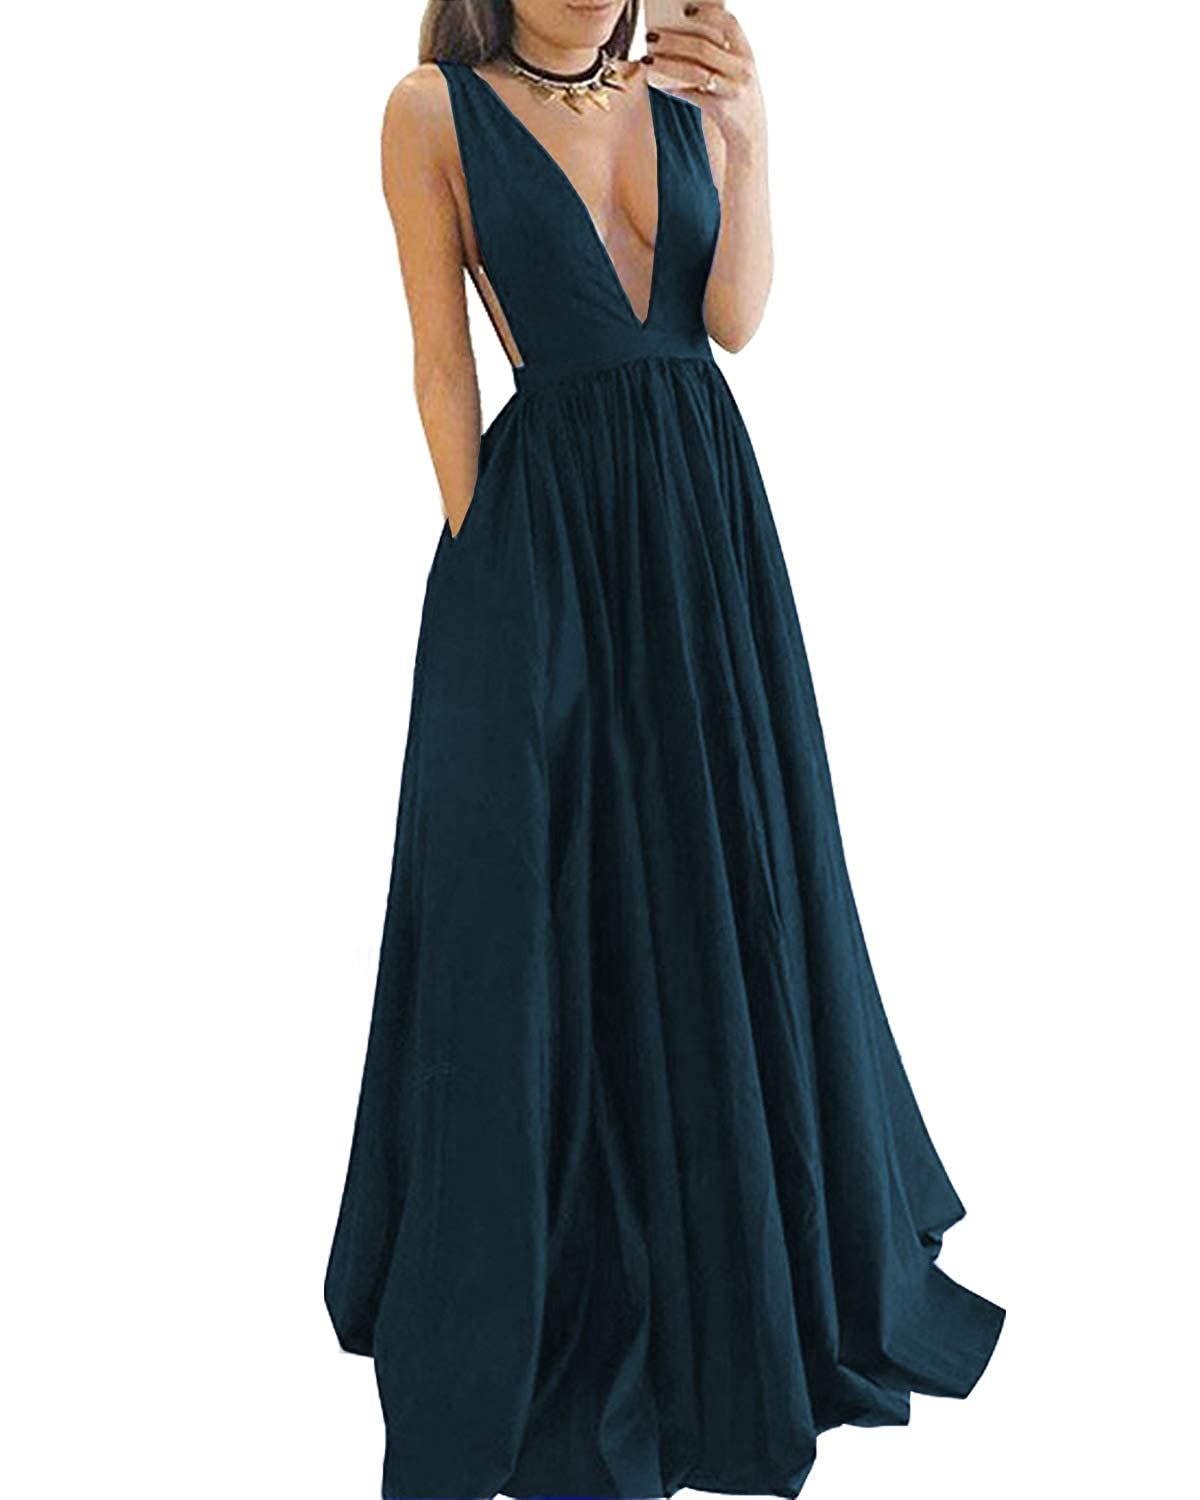 a8c02093fe7 Momabridal Womens Long Satin Sexy V Neck Prom Dresses Evening Party Formal  Gowns with Pockets at Amazon Women s Clothing store